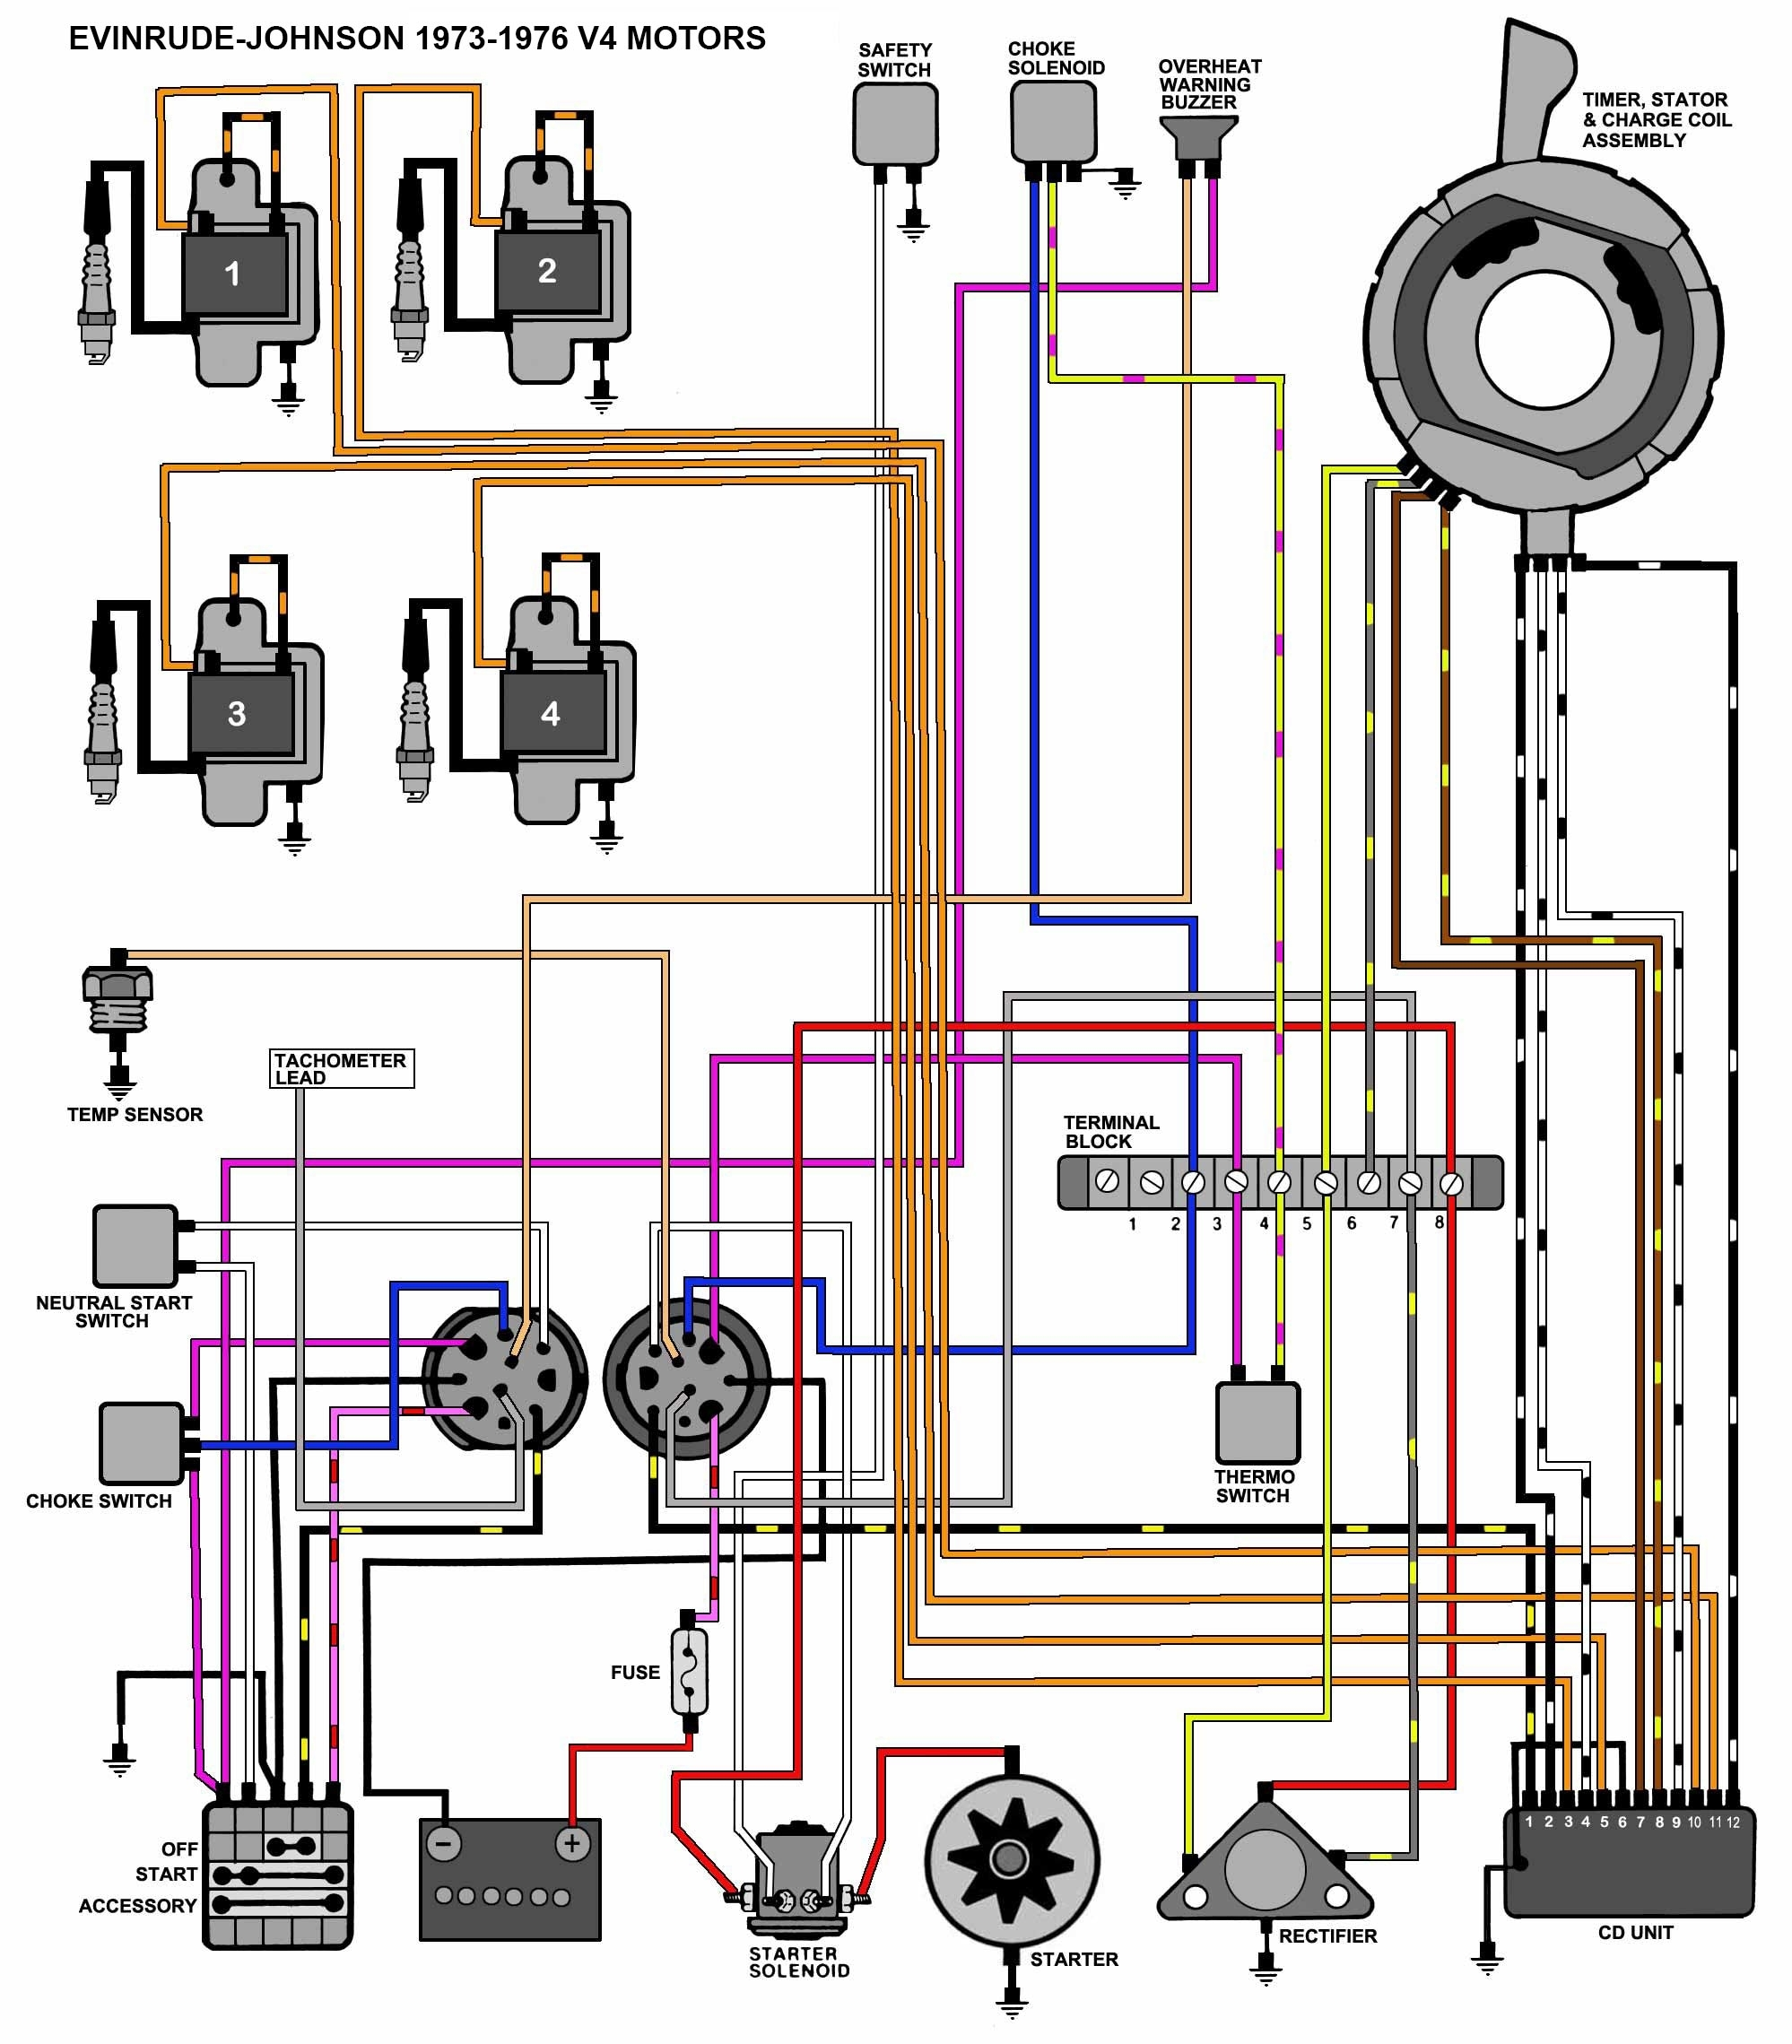 evinrude ignition switch wiring diagram with 1969 omc 55 wiring throughout 70 hp evinrude wiring diagram?resize\=665%2C759\&ssl\=1 1992 johnson 40 hp outboard wiring diagram 1992 wiring diagrams  at n-0.co